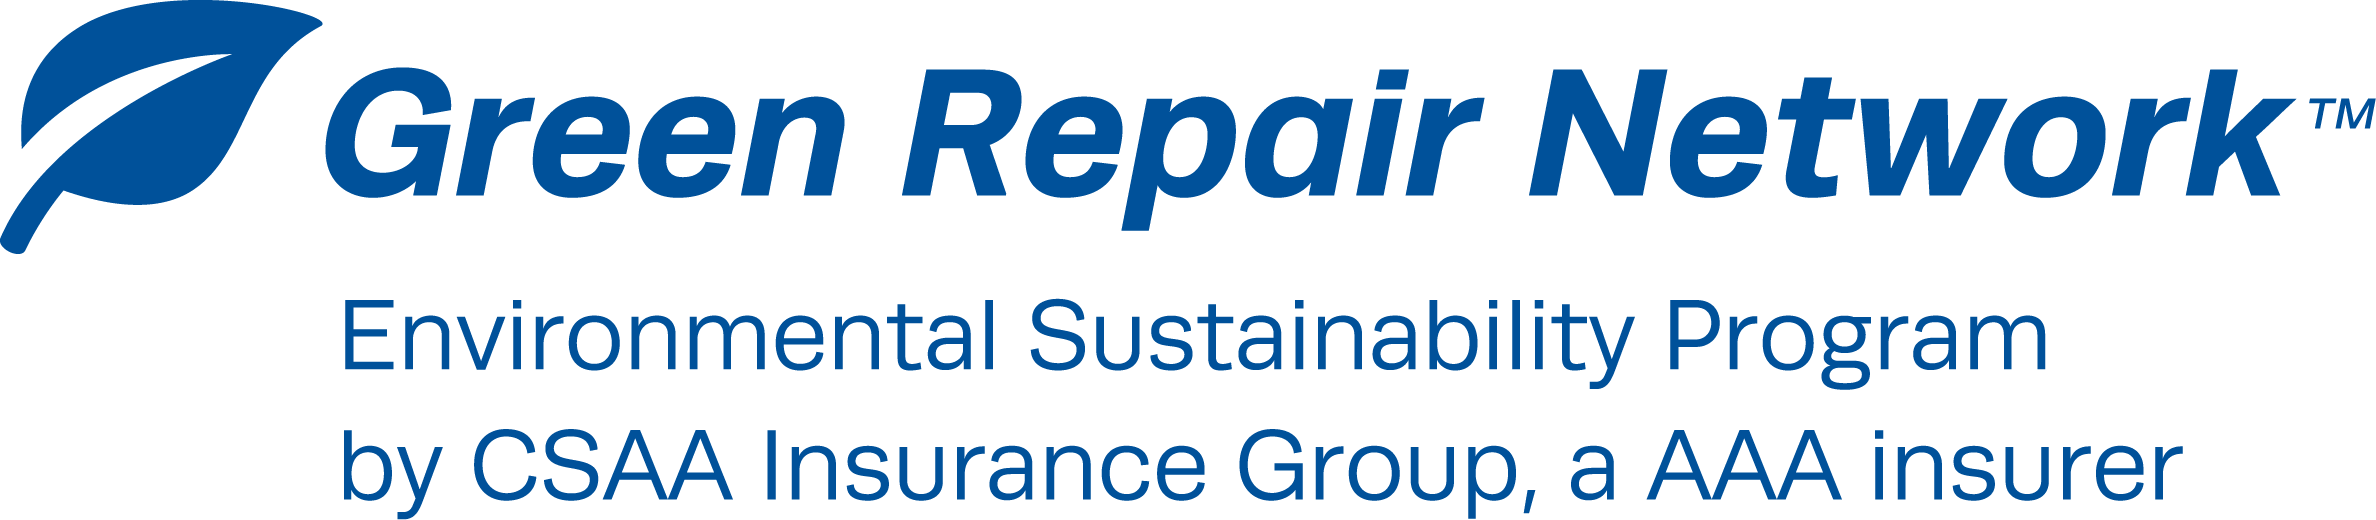 Mikes Auto Body Pleasanton Green Repair Network CSAA Insurance Group